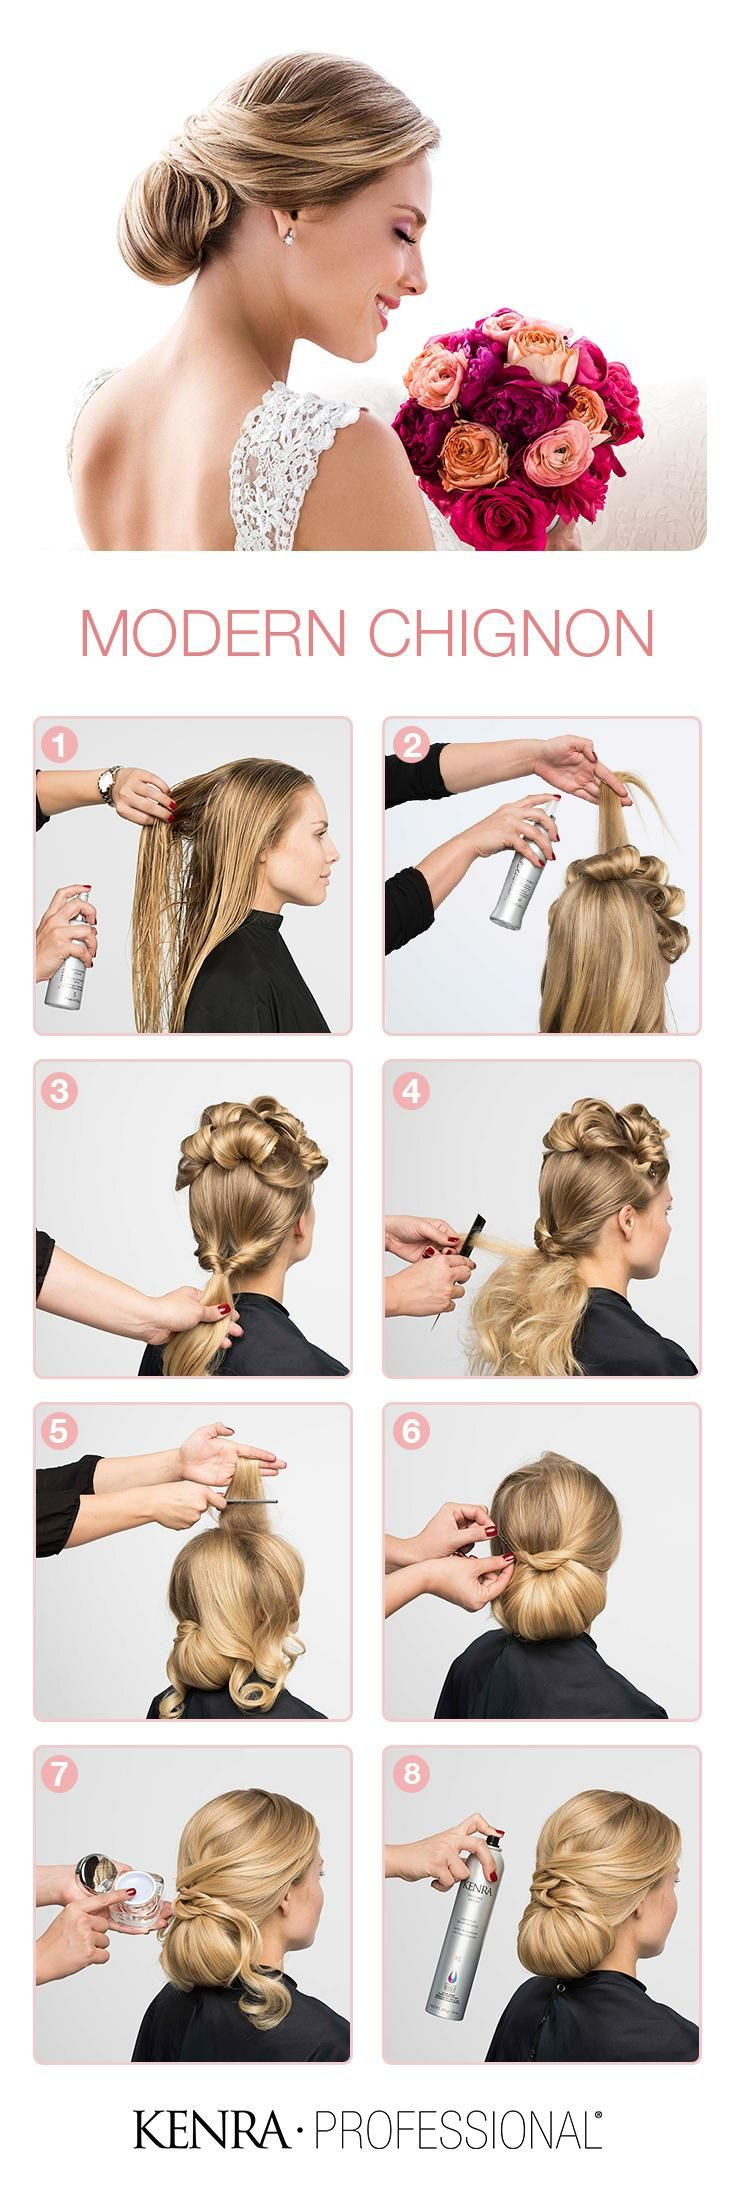 How To Modern Chignon Wedding Updo Hairstyle Tutorials - Classic hairstyle tutorials